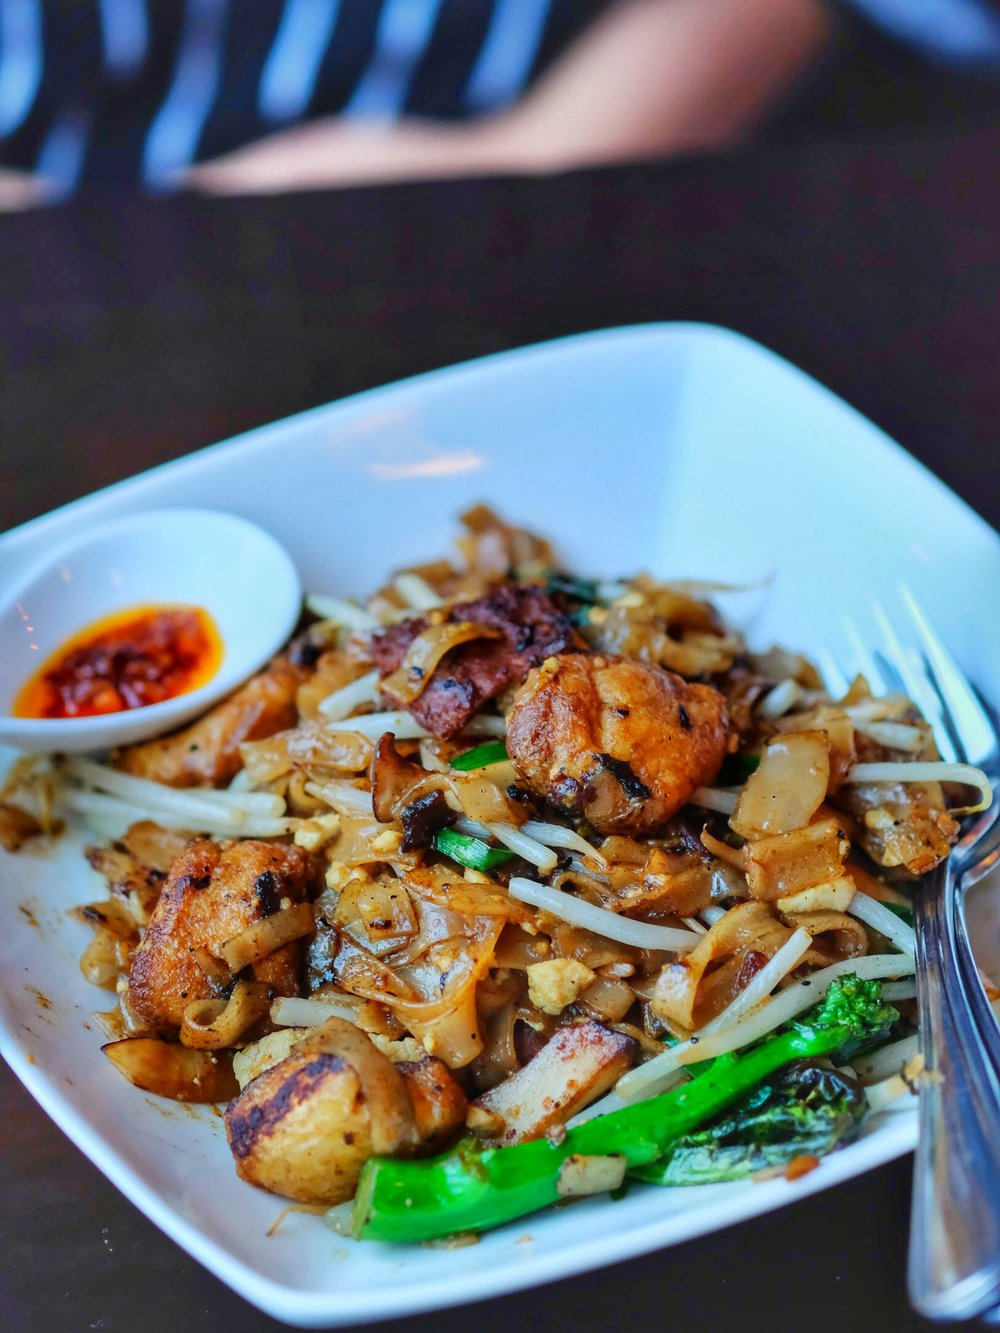 Char Kwan Teow (stir fried noodles)